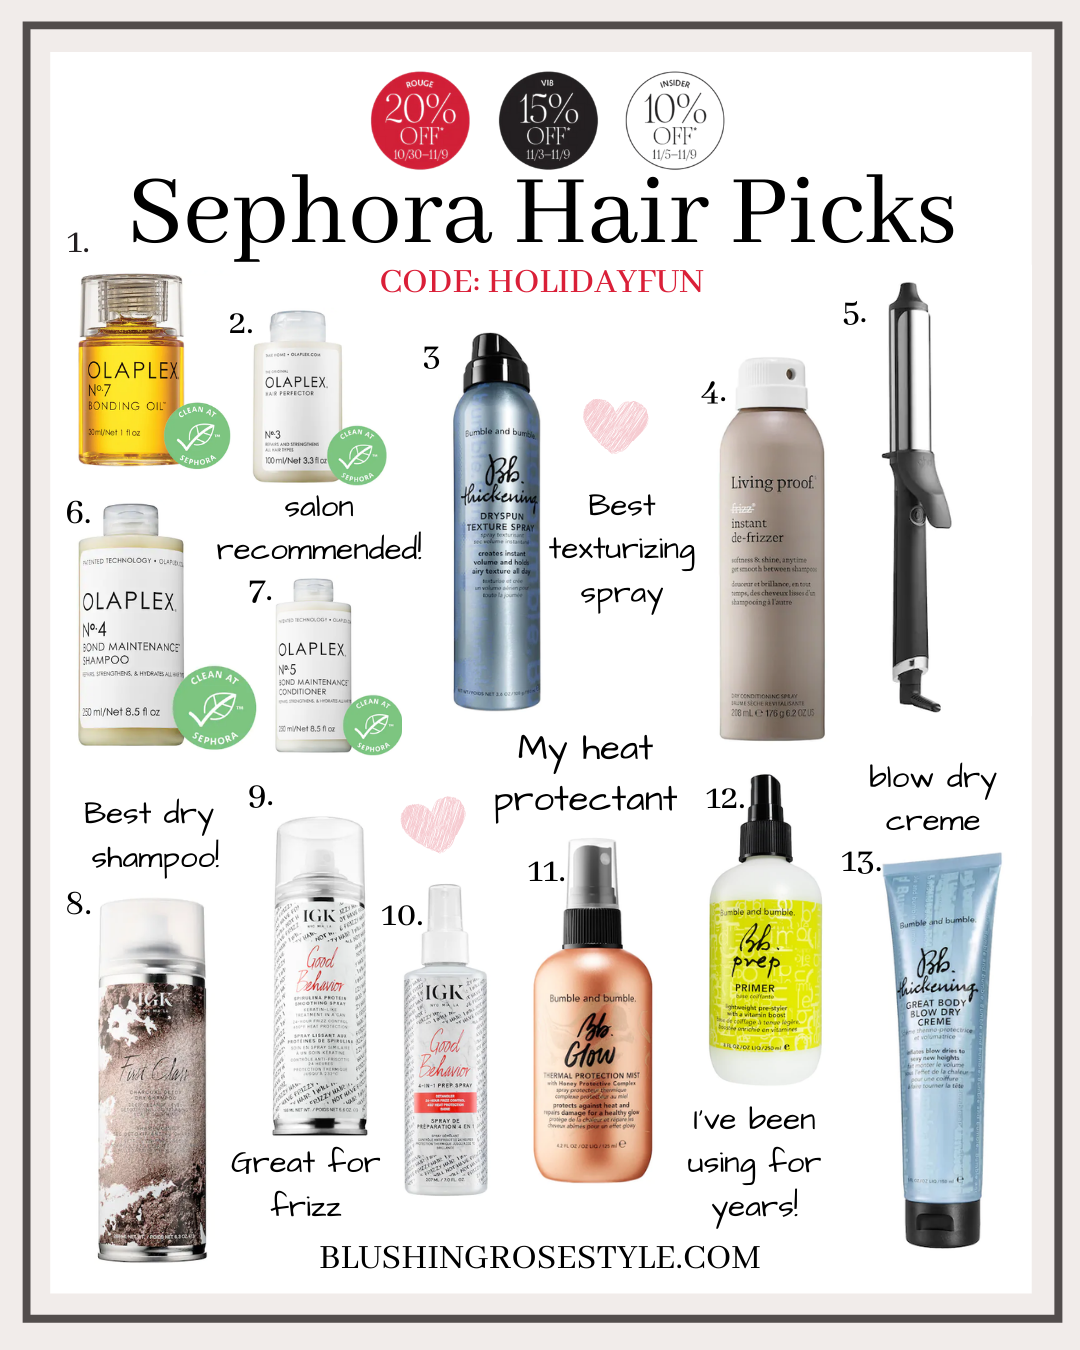 Sephora Sales Event - Hair Picks